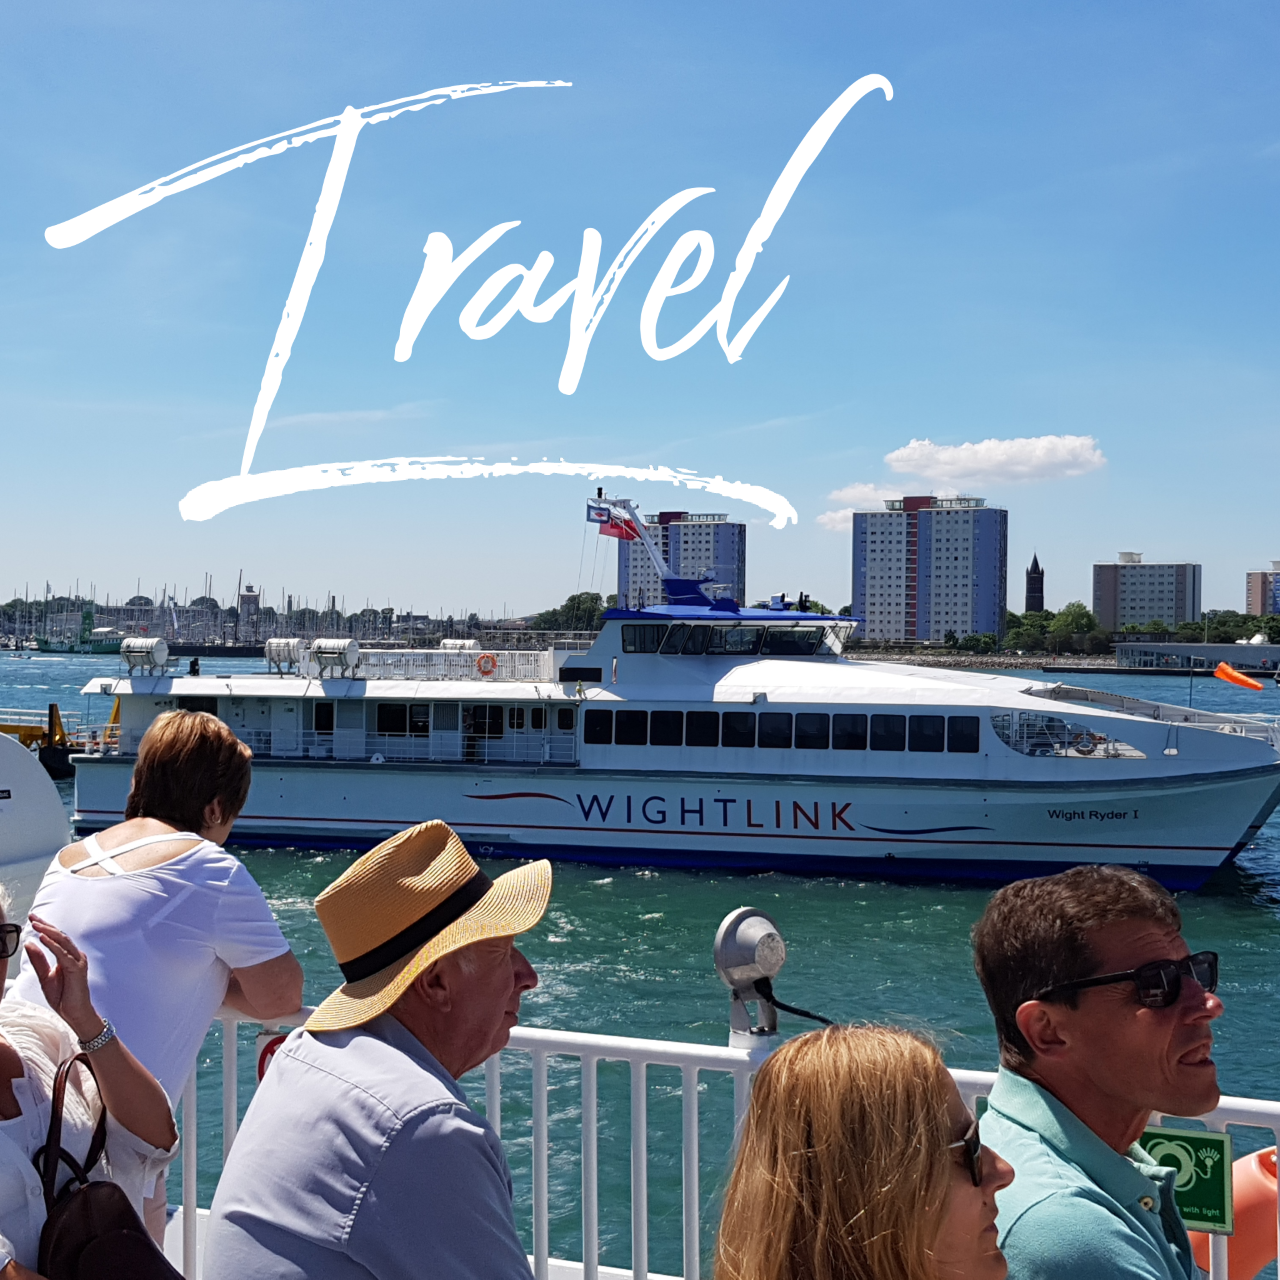 Travel to the Isle of Wight